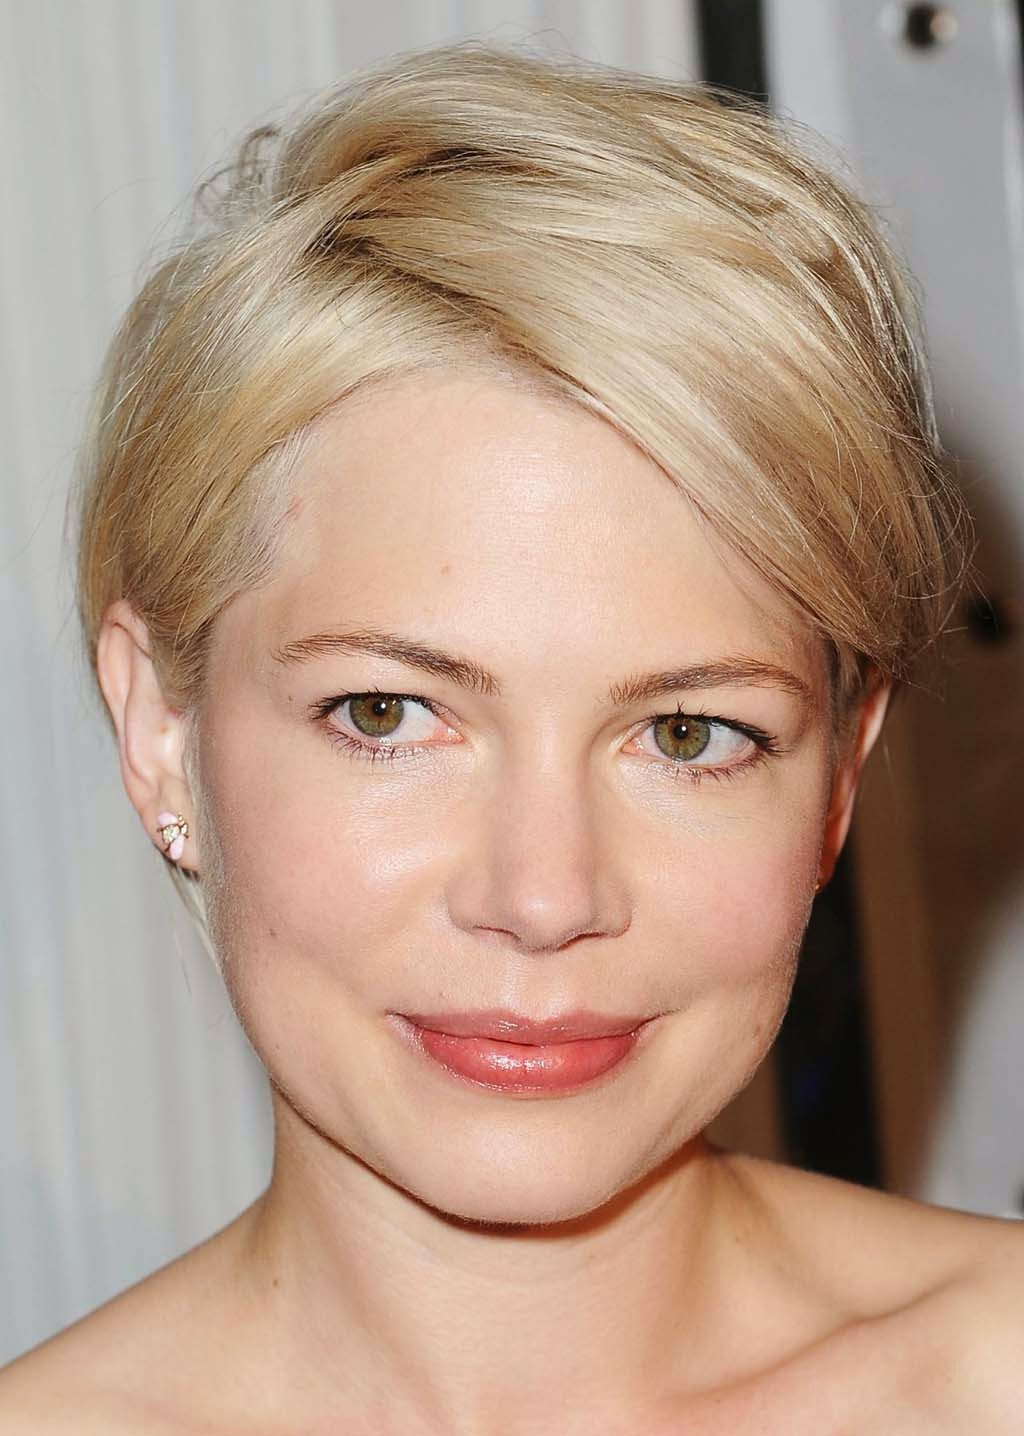 Superb Hairstyle: Short Cool Hairstyles for Round Faces